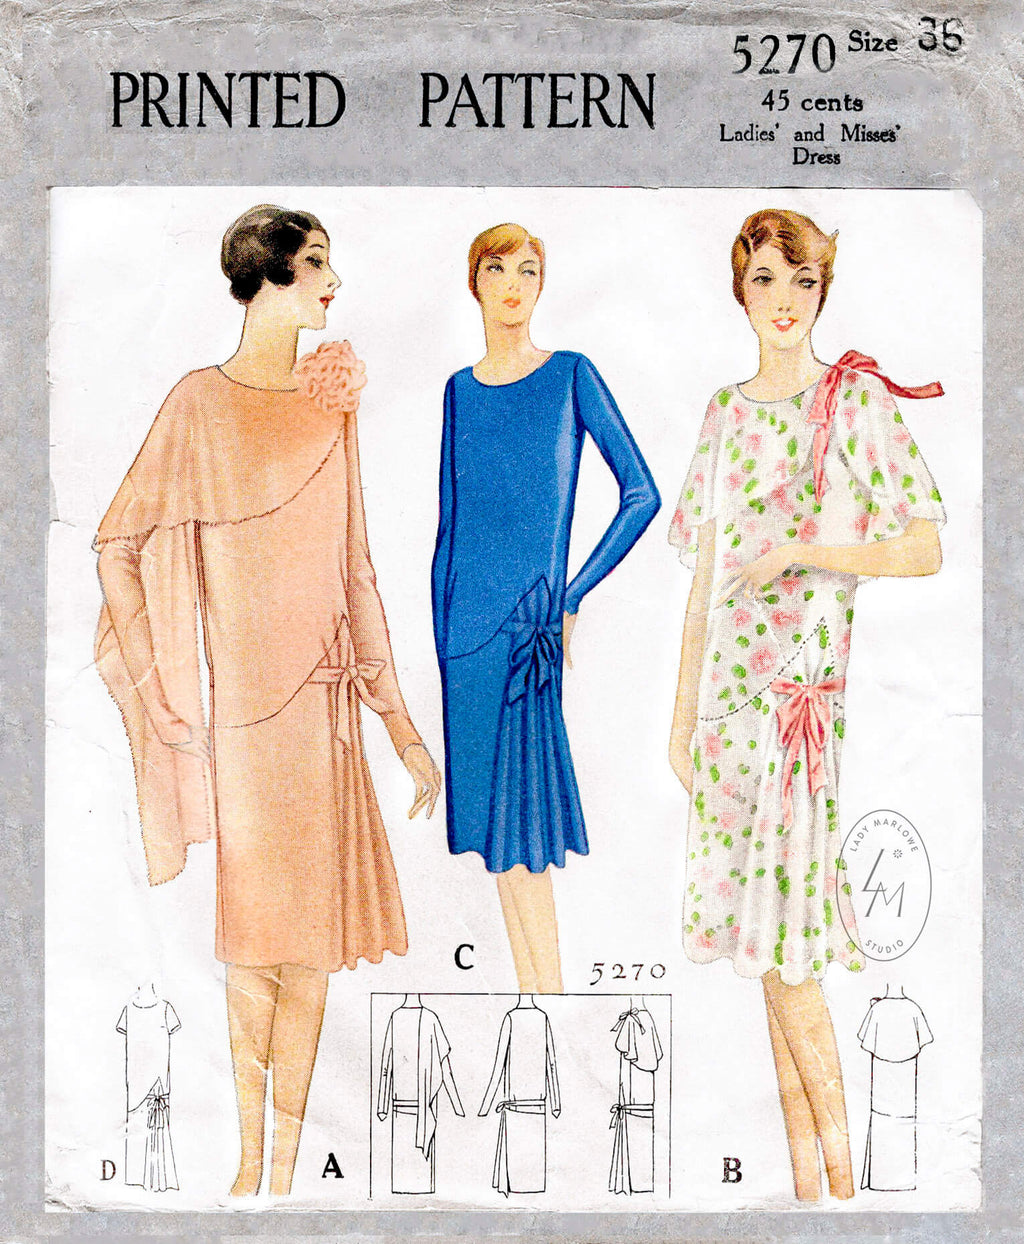 McCall 5270 1920s vintage sewing pattern flapper dress draped collar